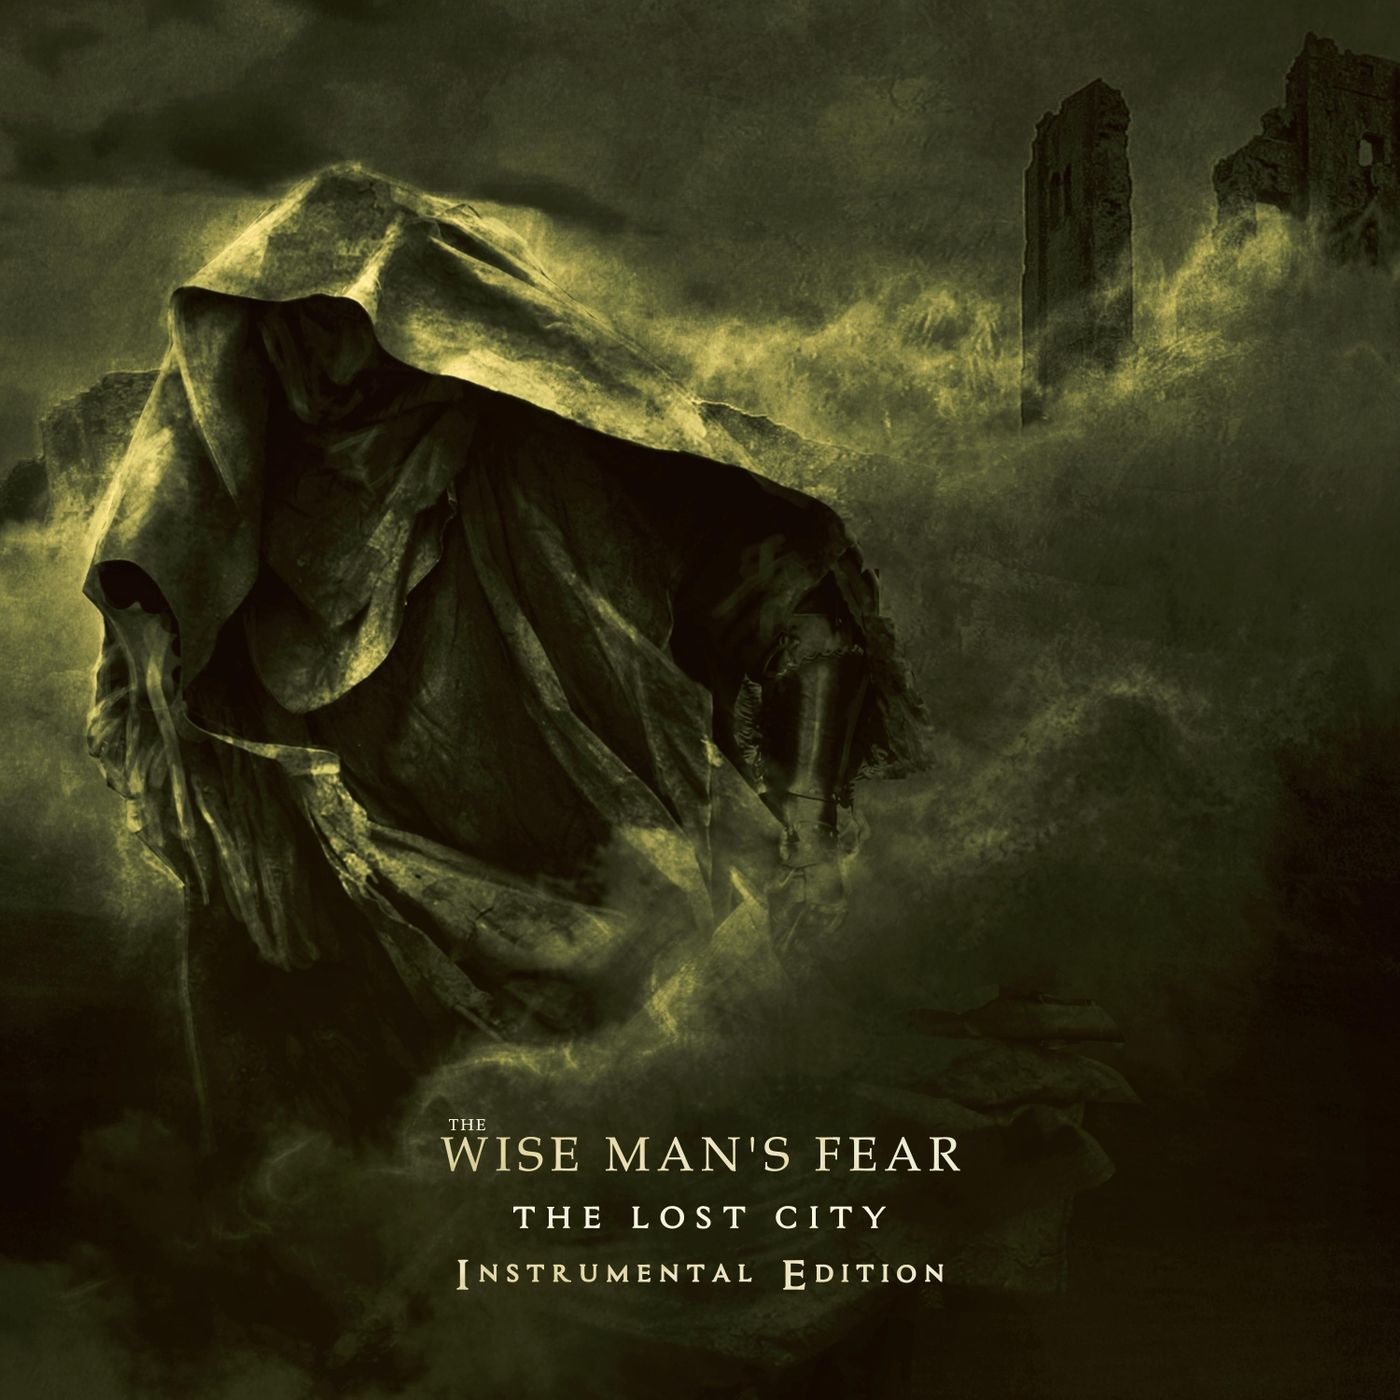 The Wise Man's Fear - The Lost City (Instrumental Edition) (2019)